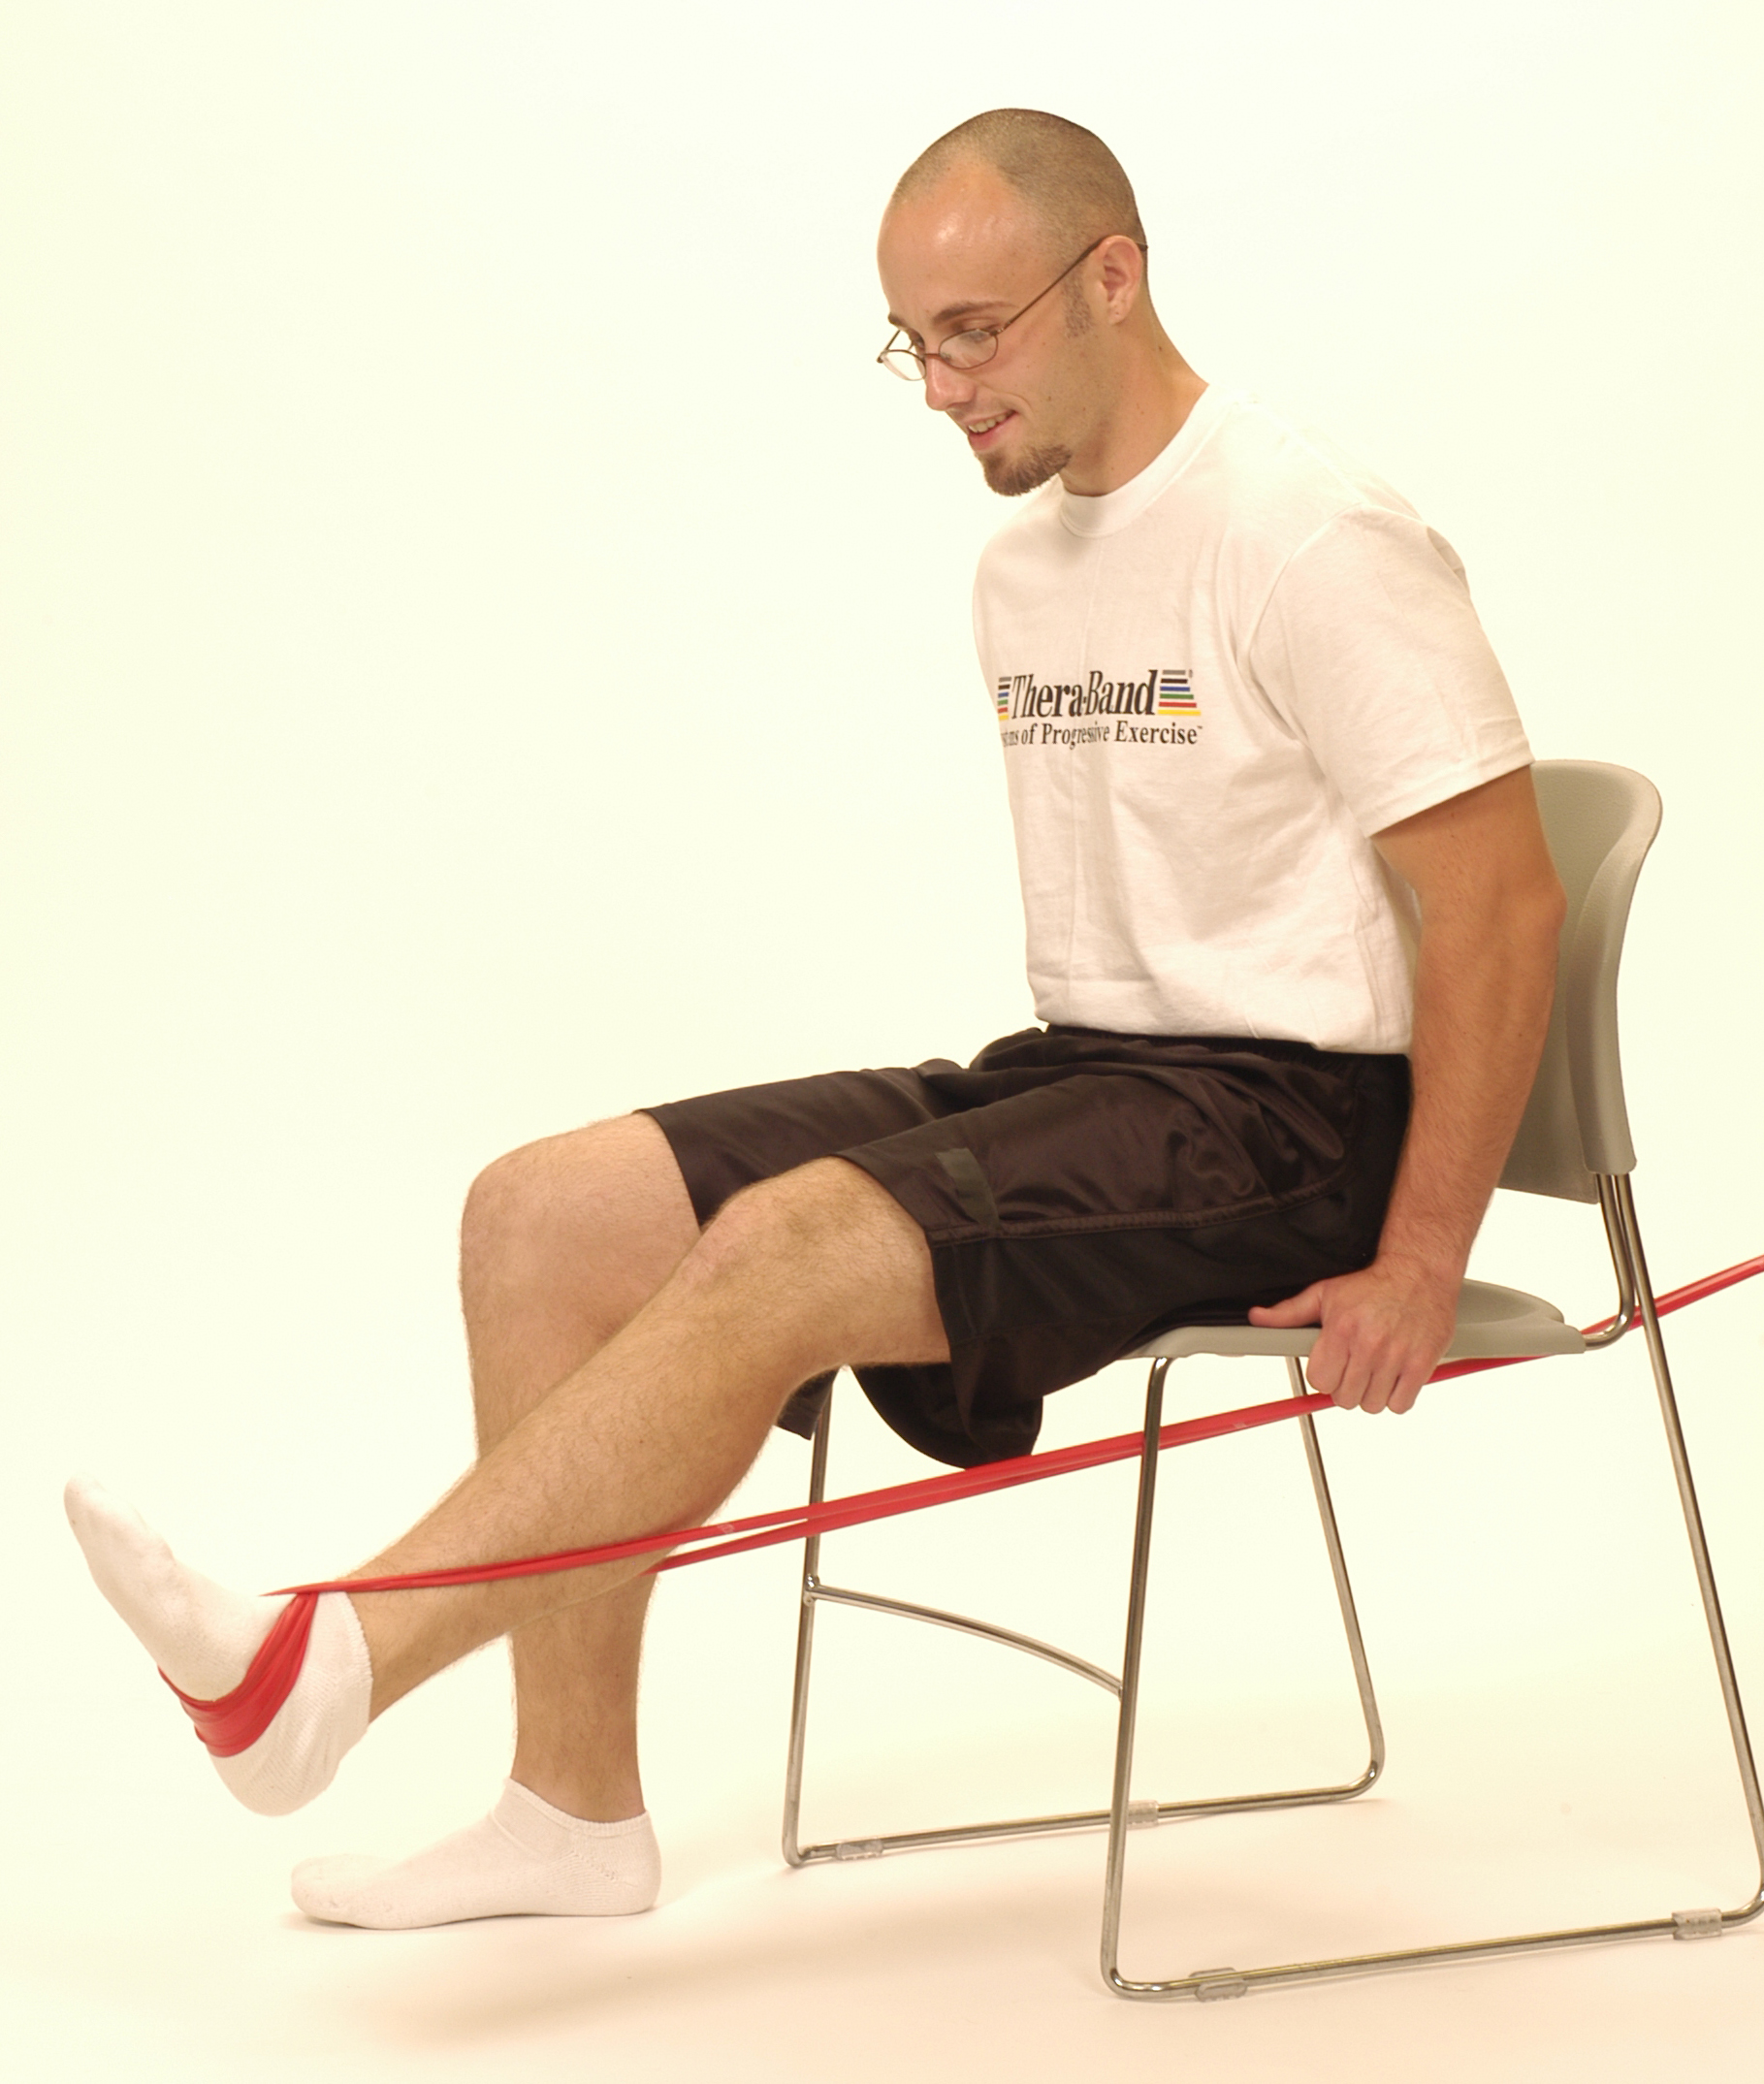 Study Shows Elastic Resistance Exercise As Effective As